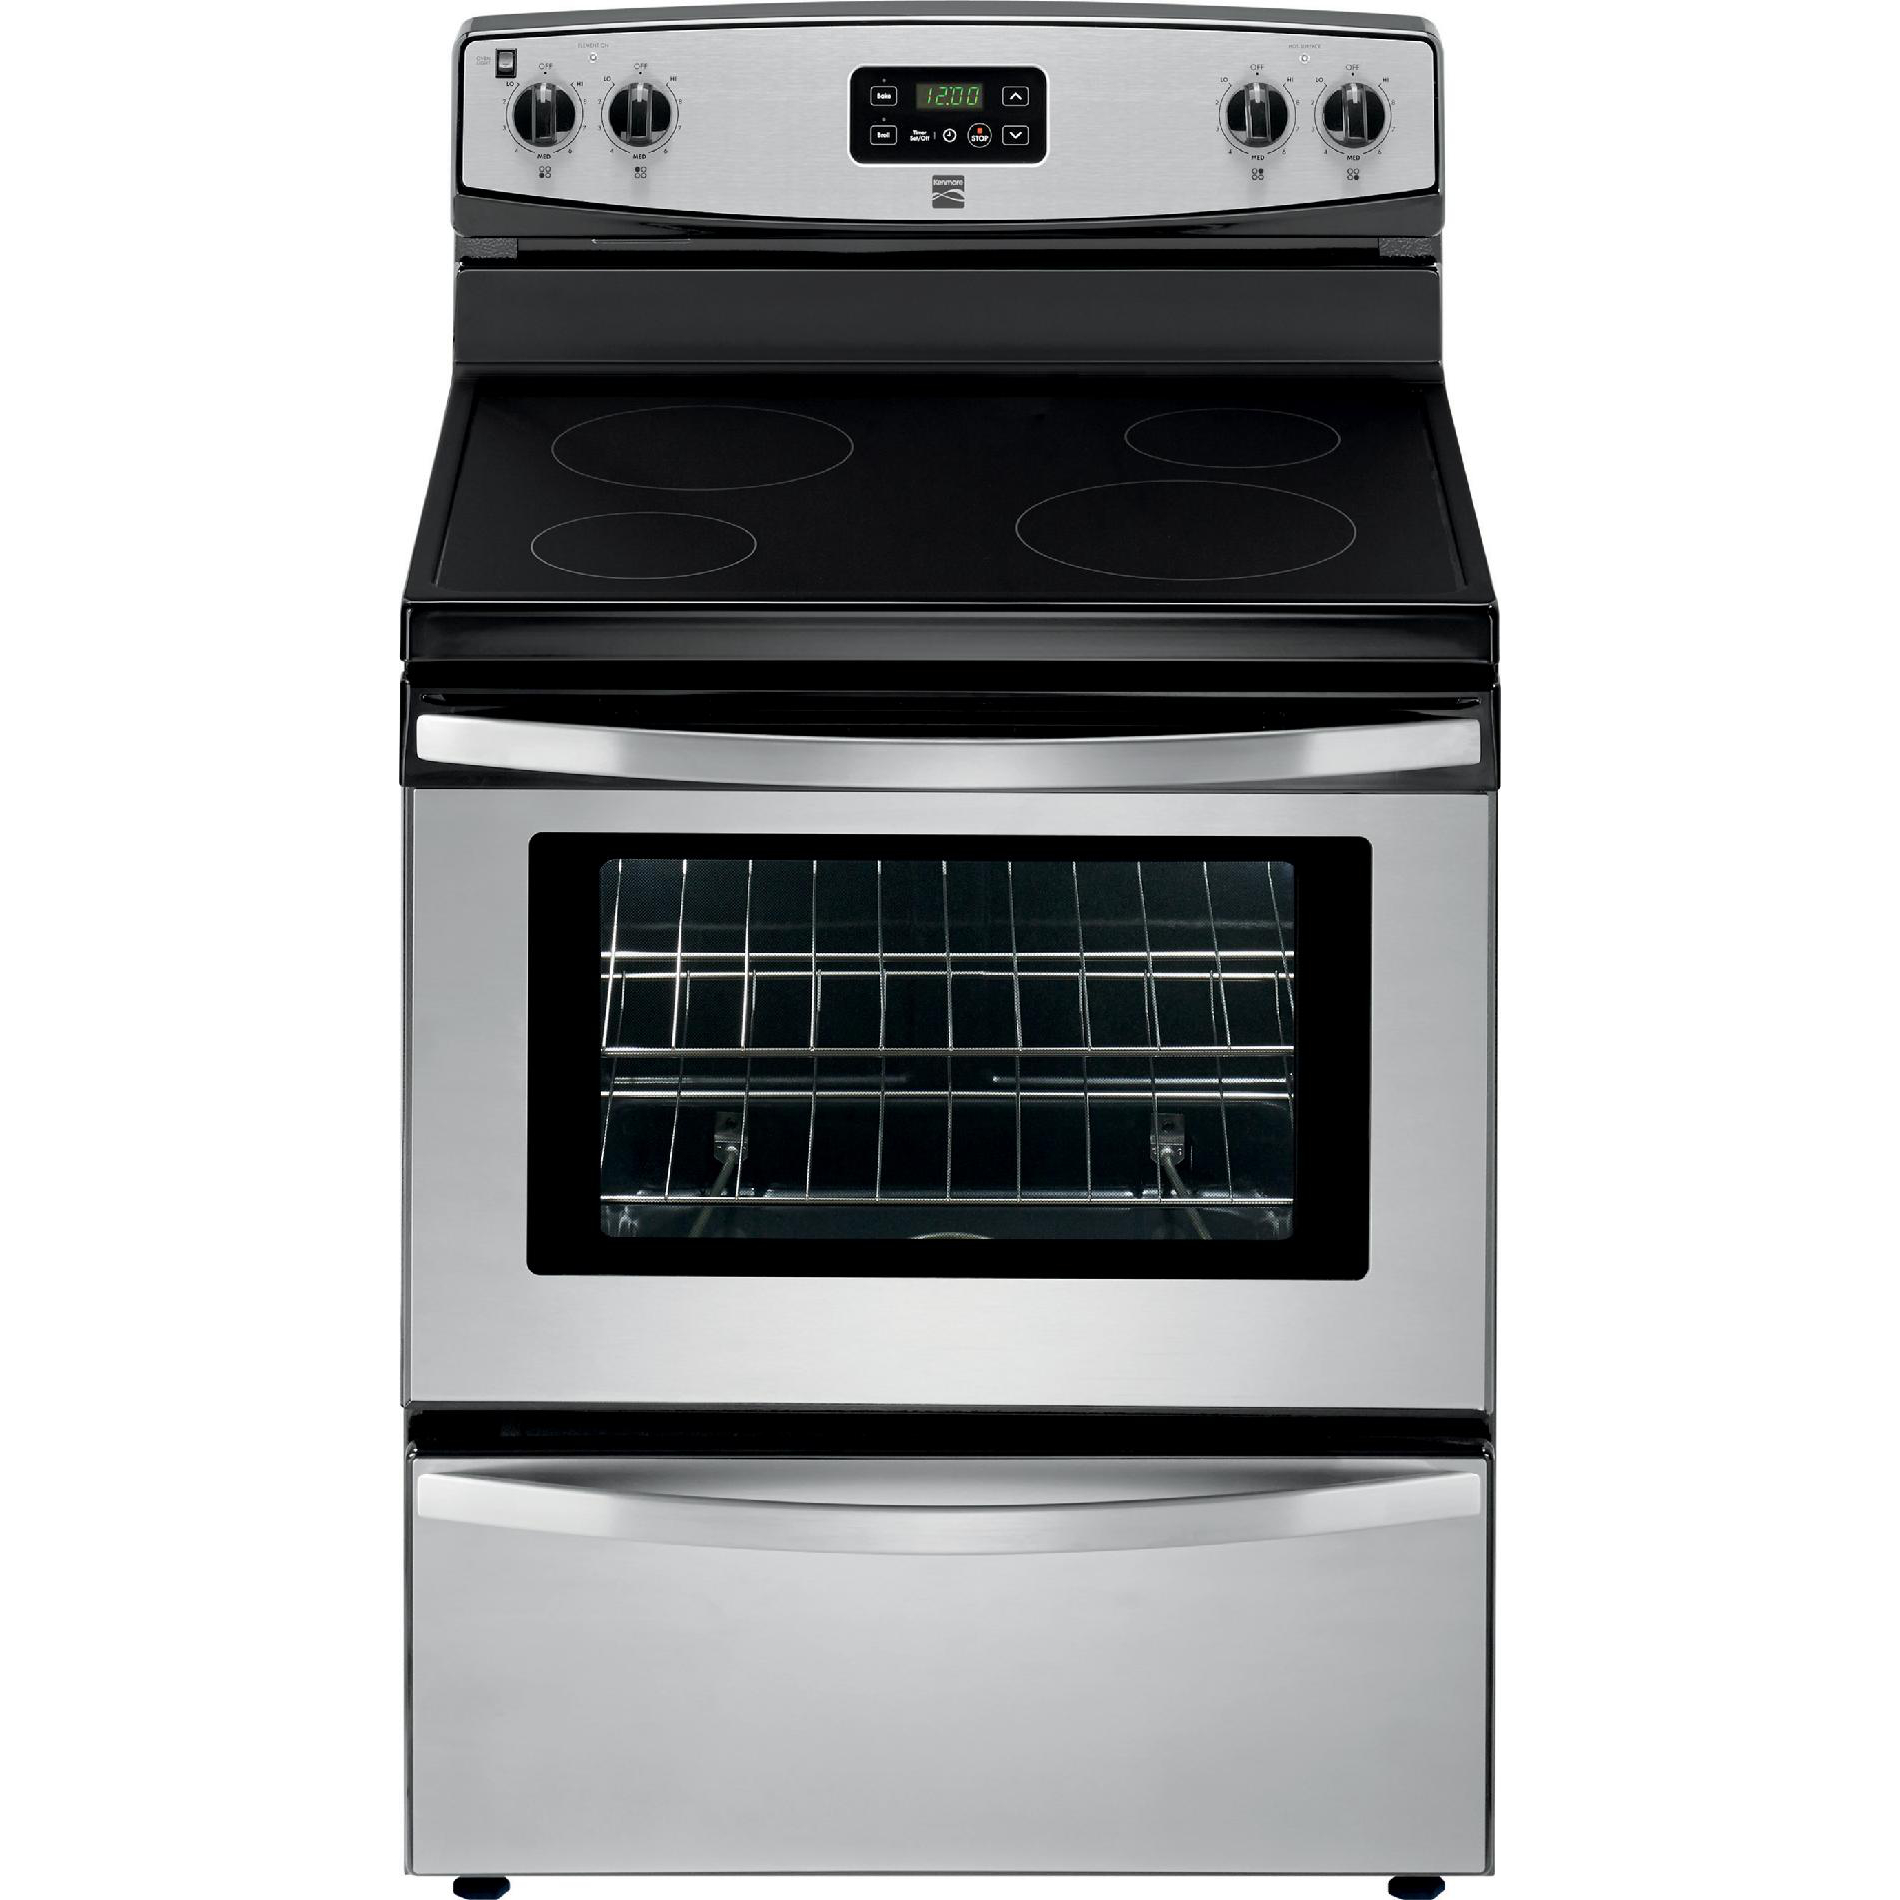 Kenmore 93013 4.9 cu. ft. Electric Freestanding Range - Stainless Steel